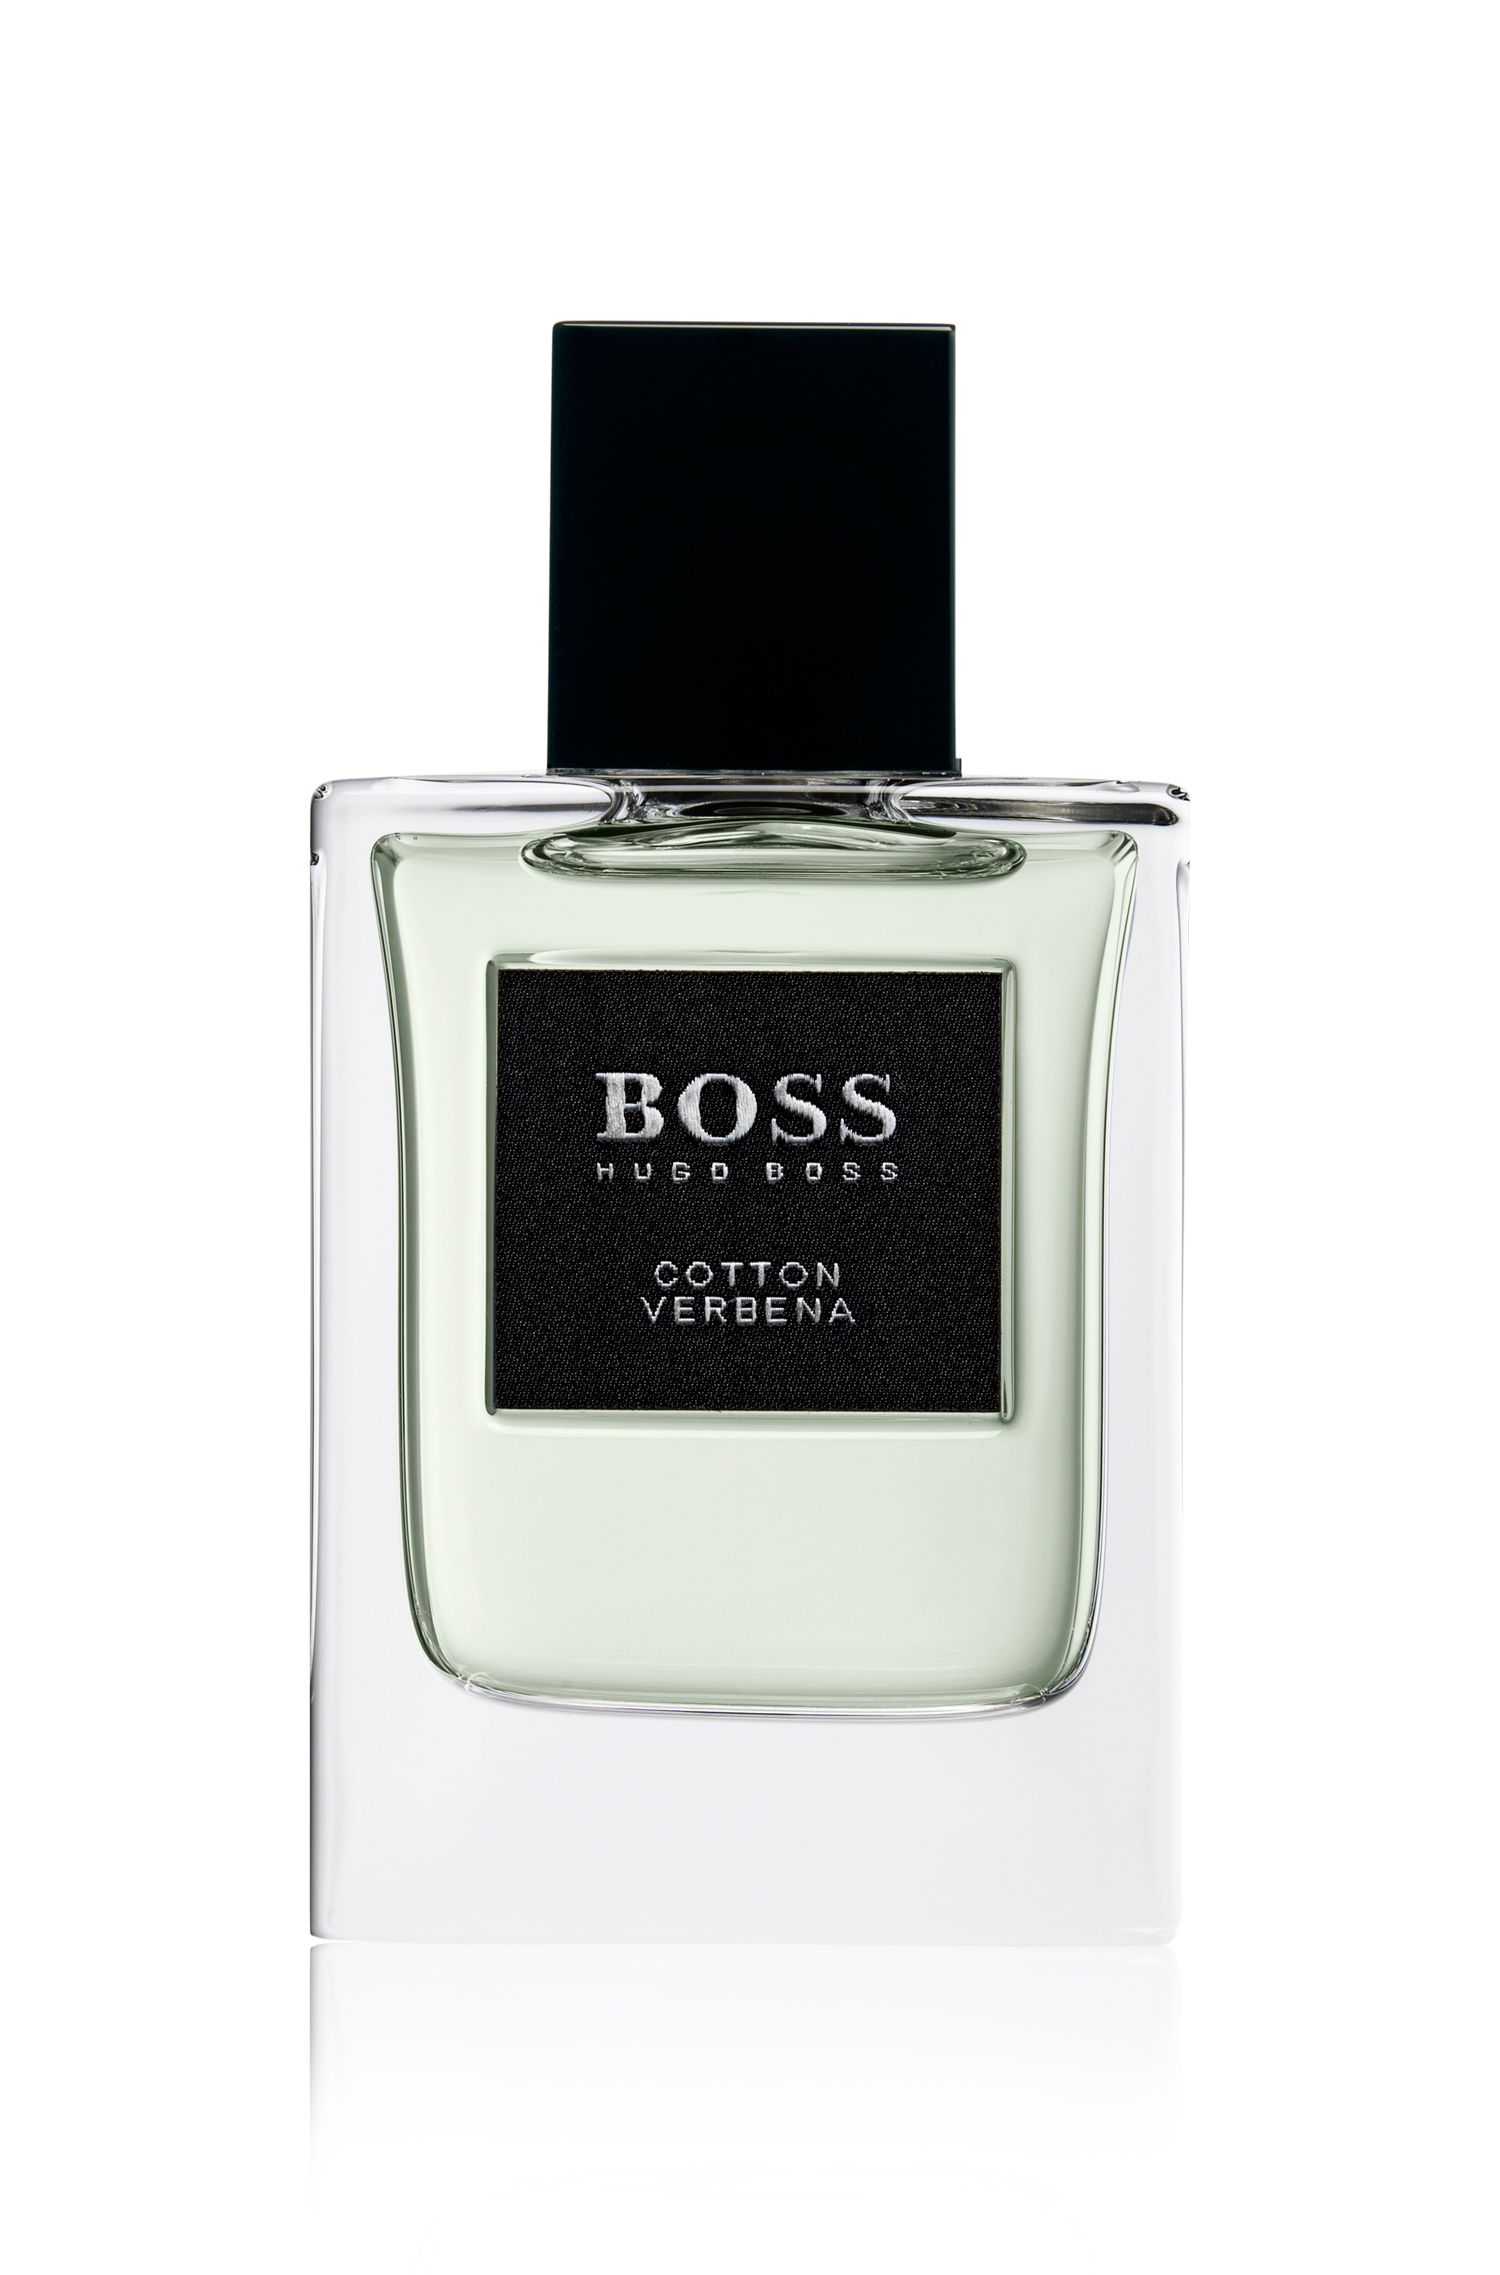 'BOSS The Collection' | 1.6 fl. oz. (50 mL) Cotton & Verbena Eau de Toilette